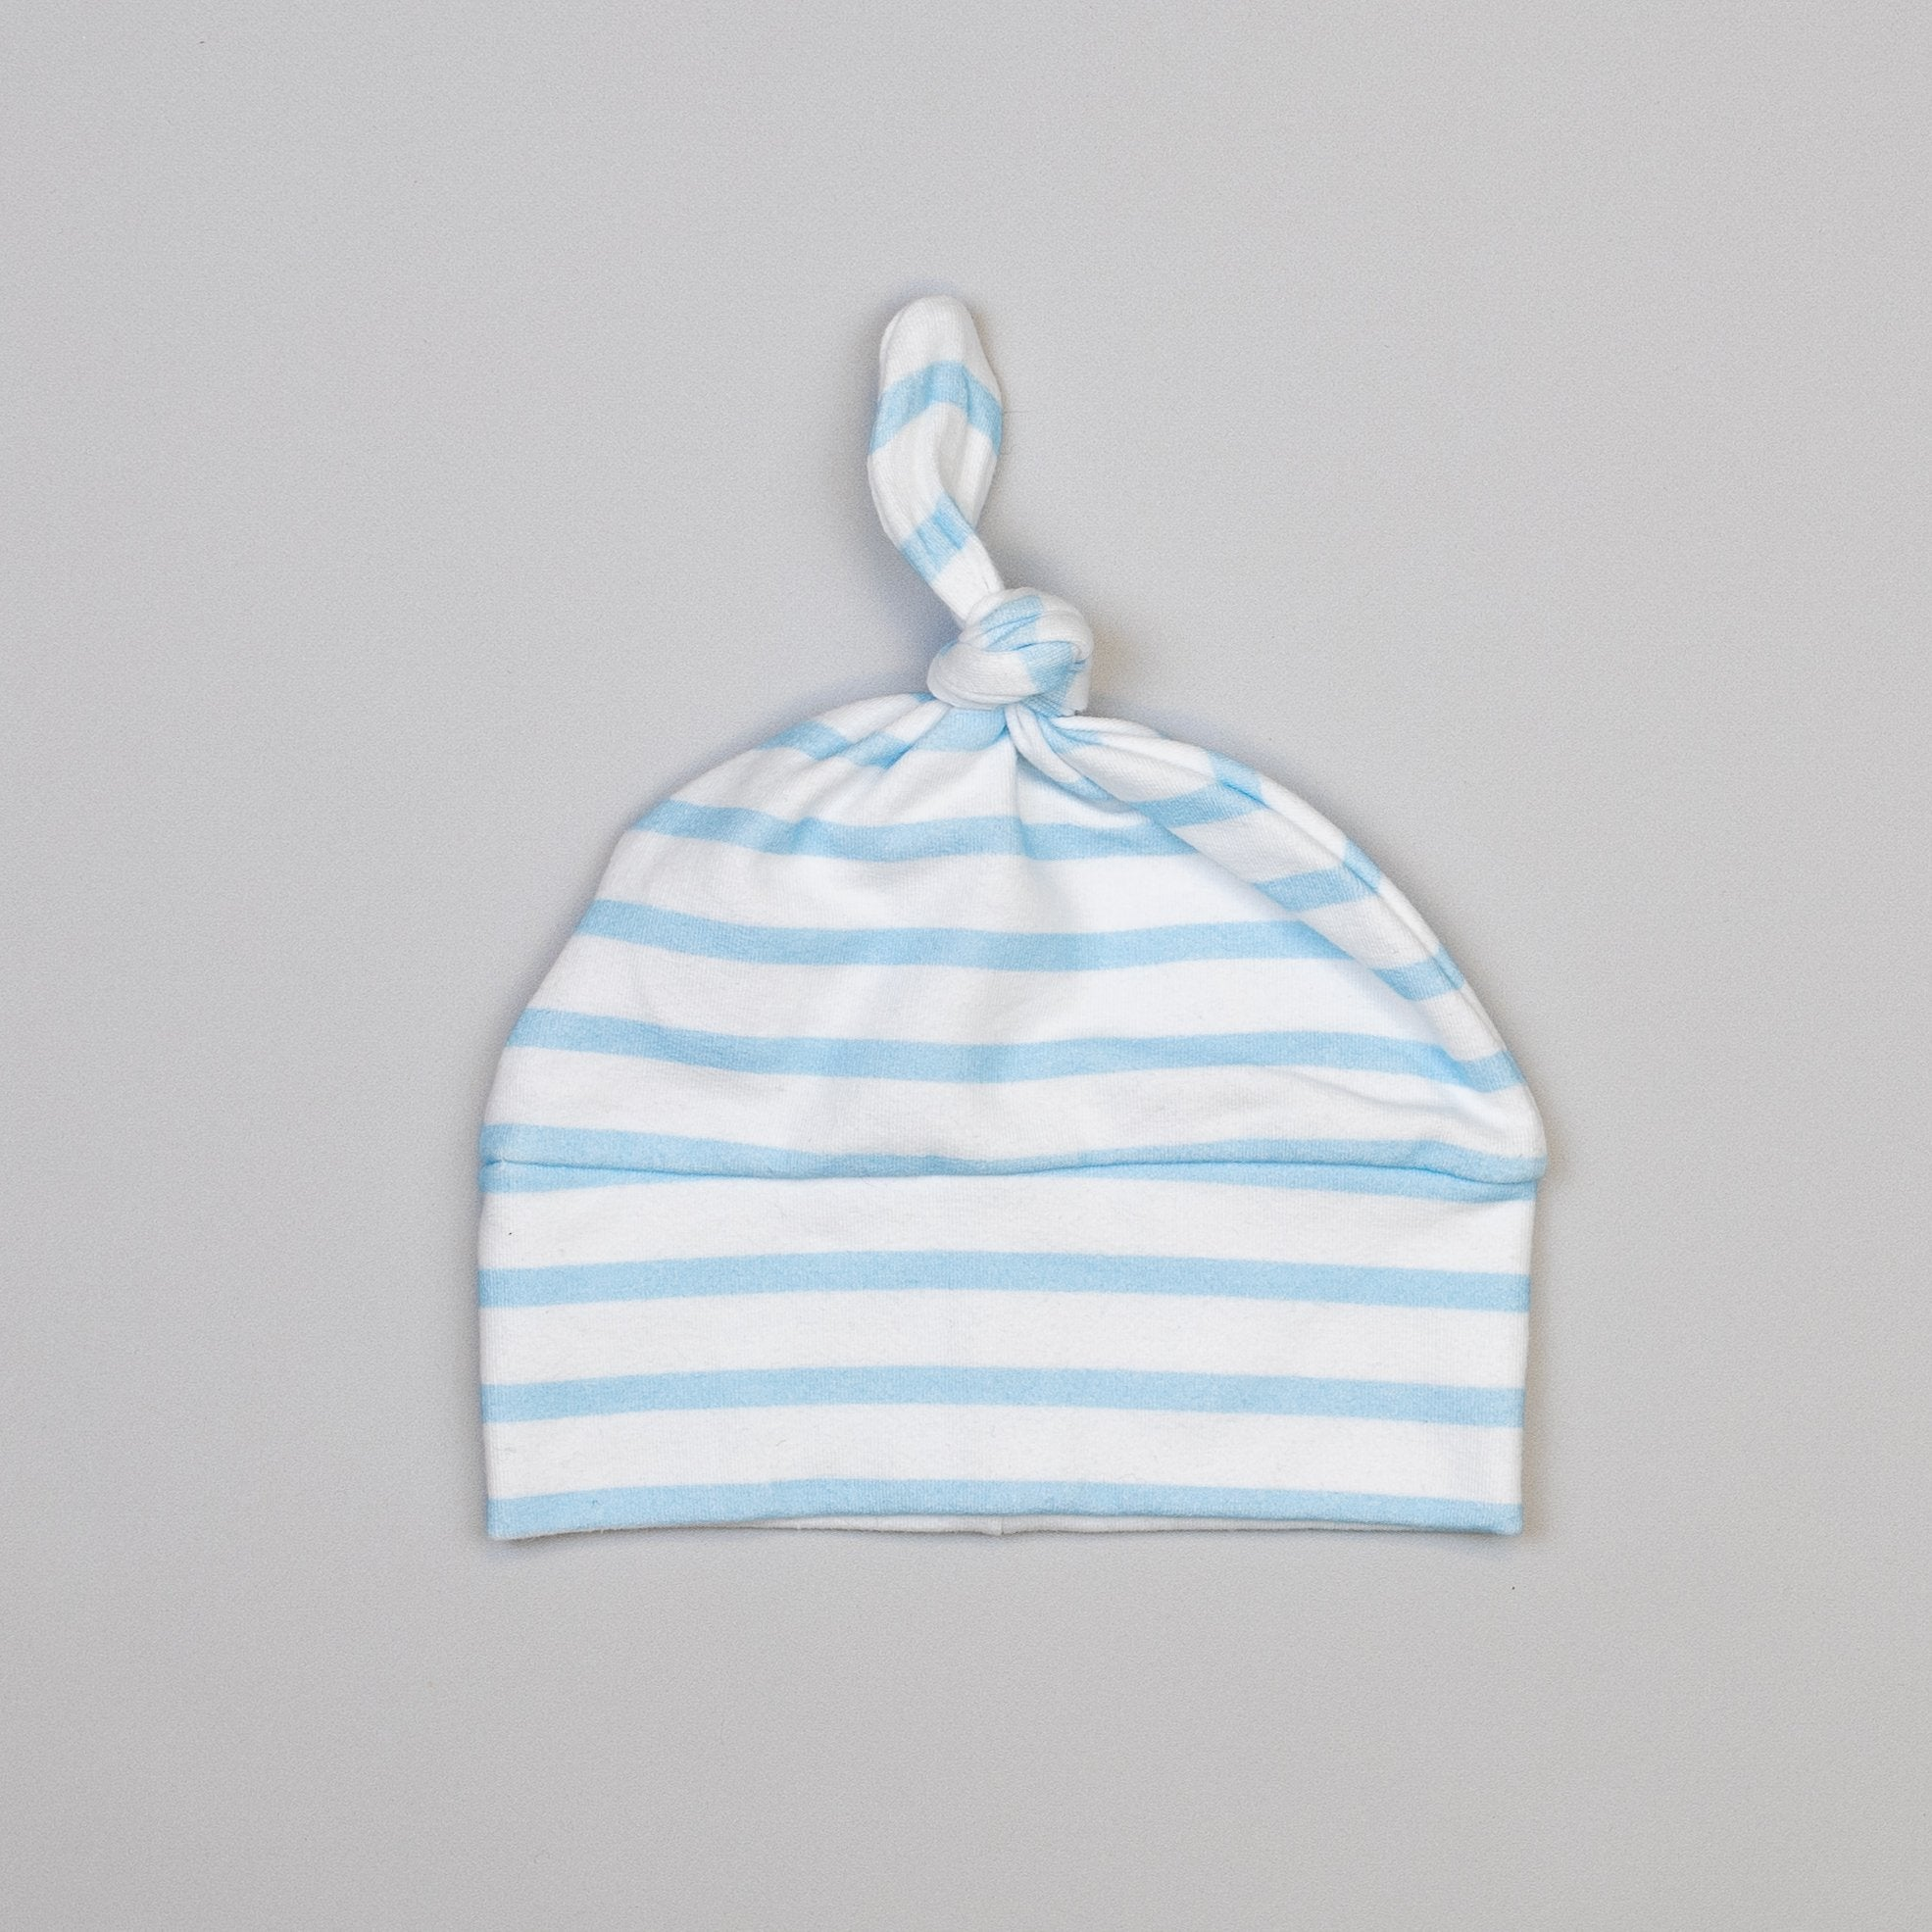 Cuddle Sleep Dream Knot Hat Small (0-3m) Blue/White Stripe French Terry Knot Hat